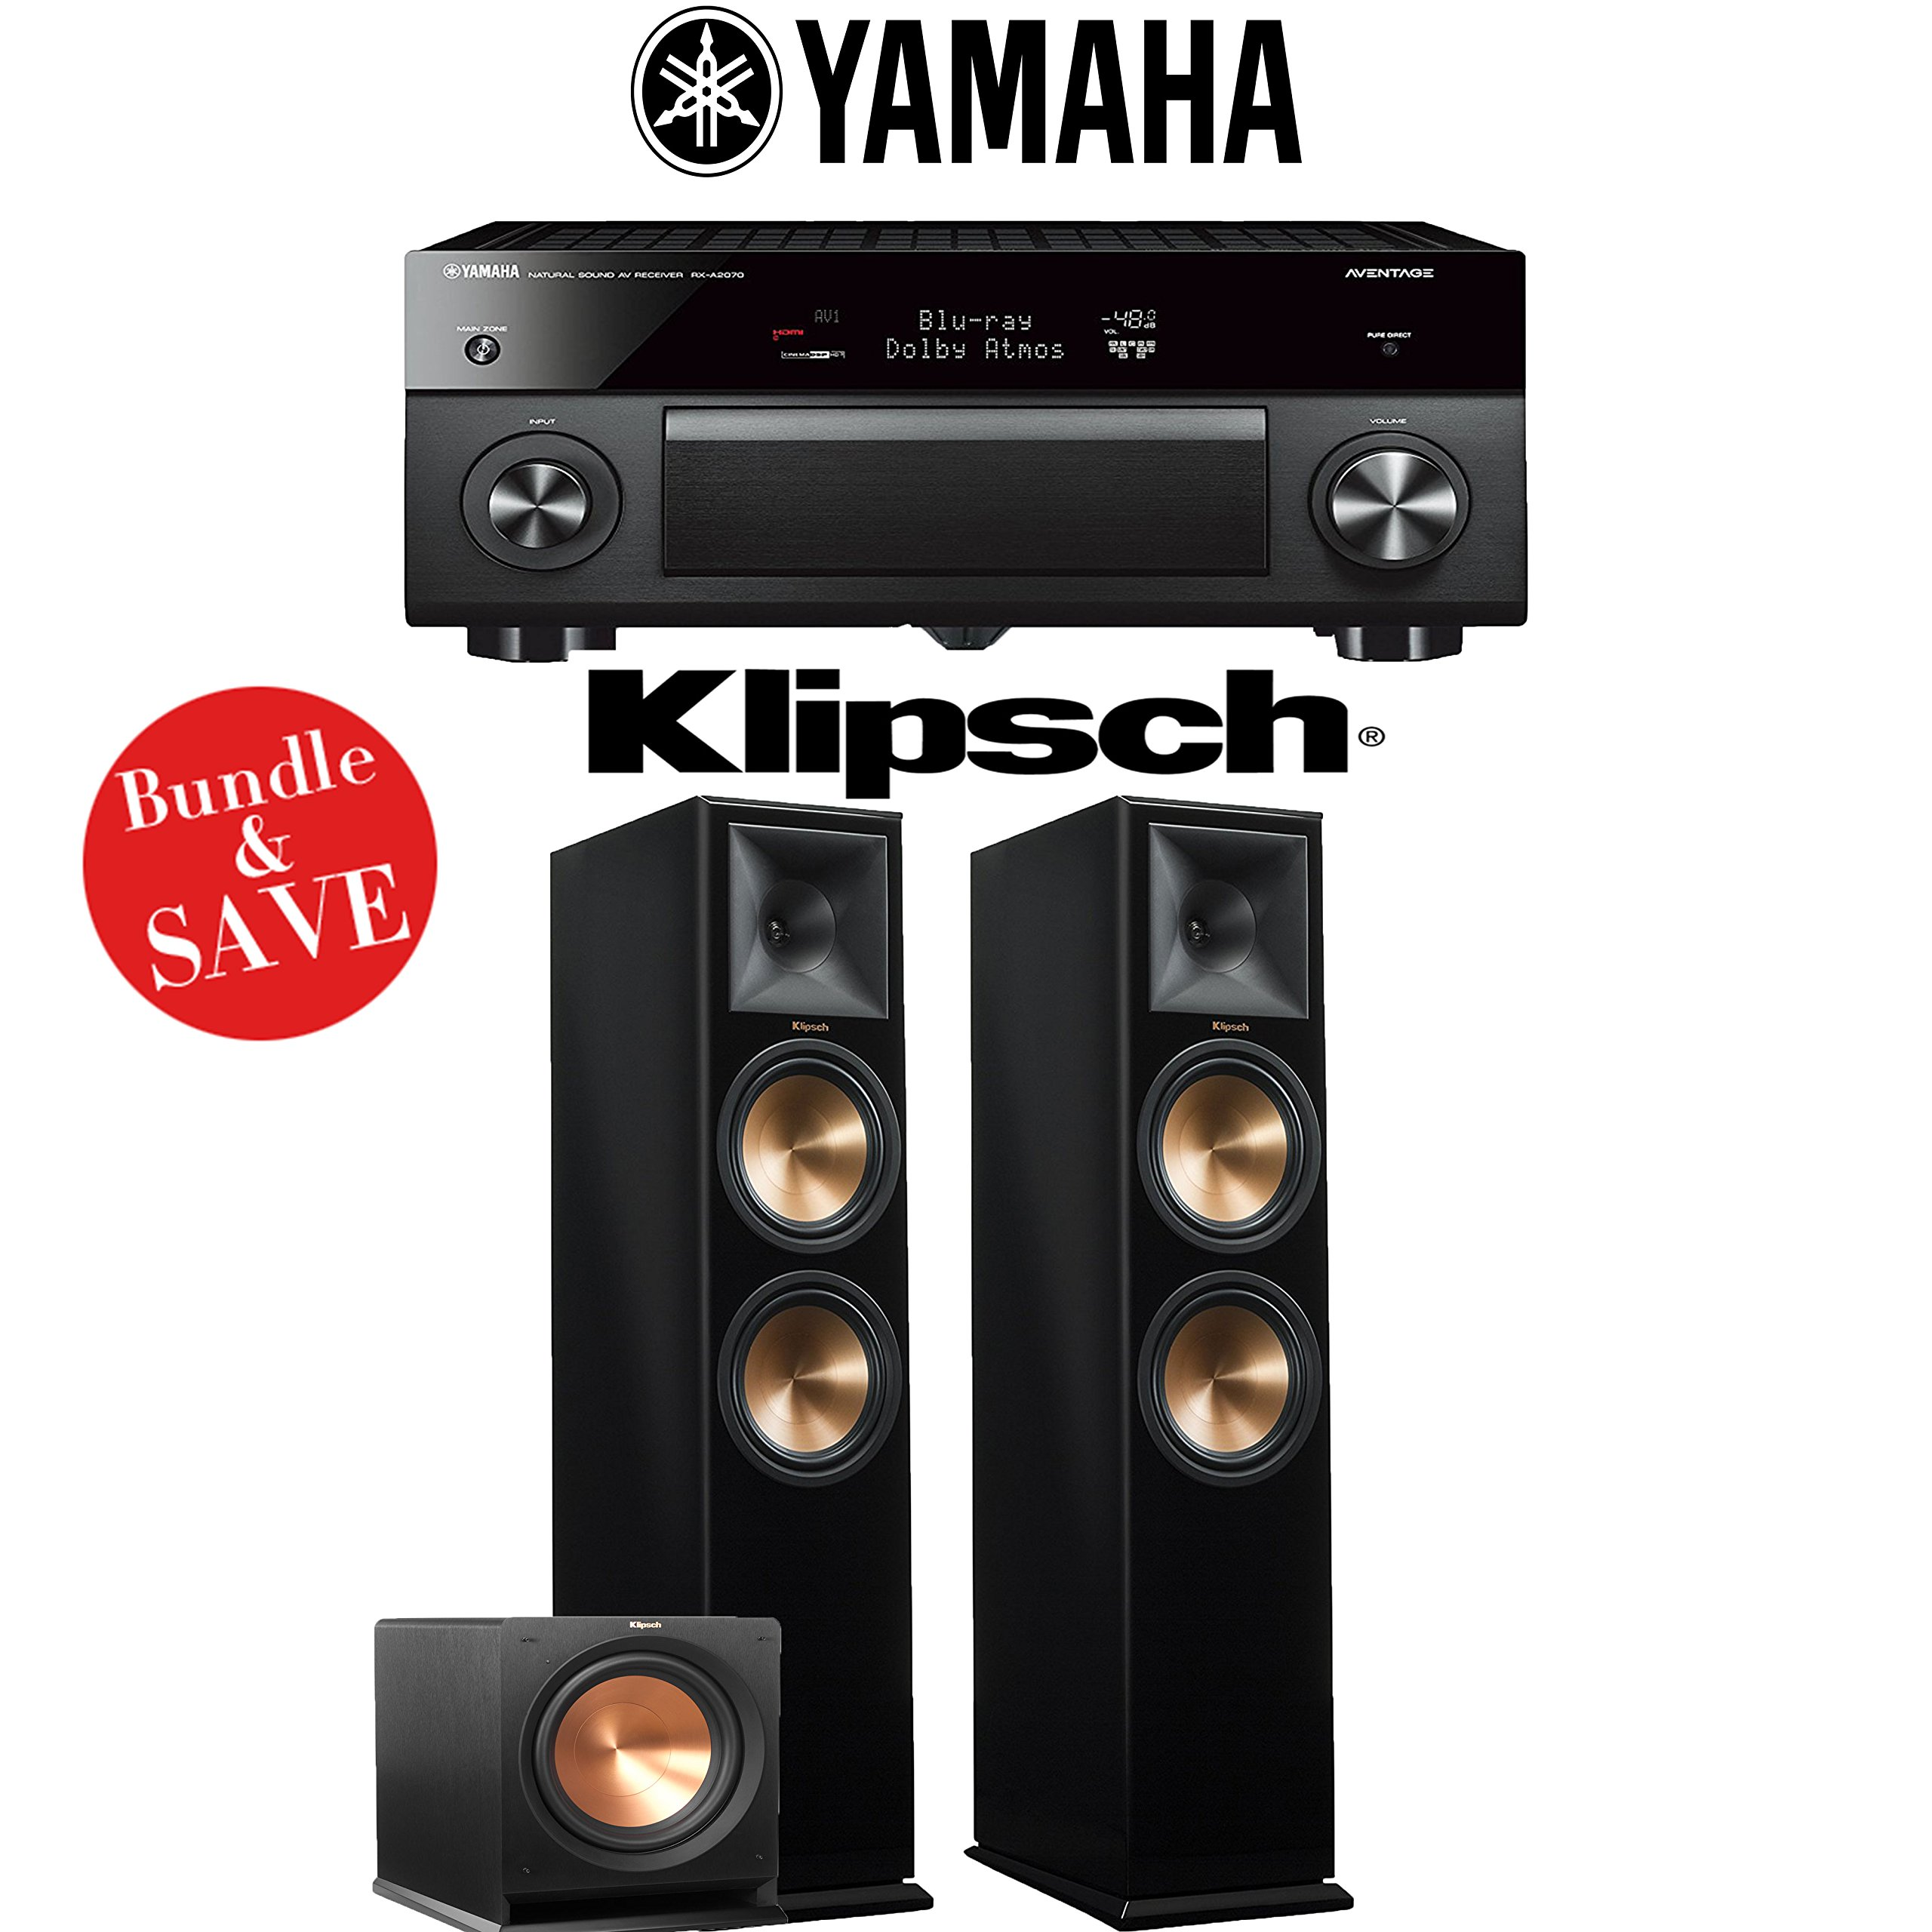 Yamaha AVENTAGE RX-A2070BL 9.2-Ch 4K Network AV Receiver + Klipsch RP-280F + Klipsch R-112SW - 2.1-Ch Home Theater Package (Piano Black) by Yamaha